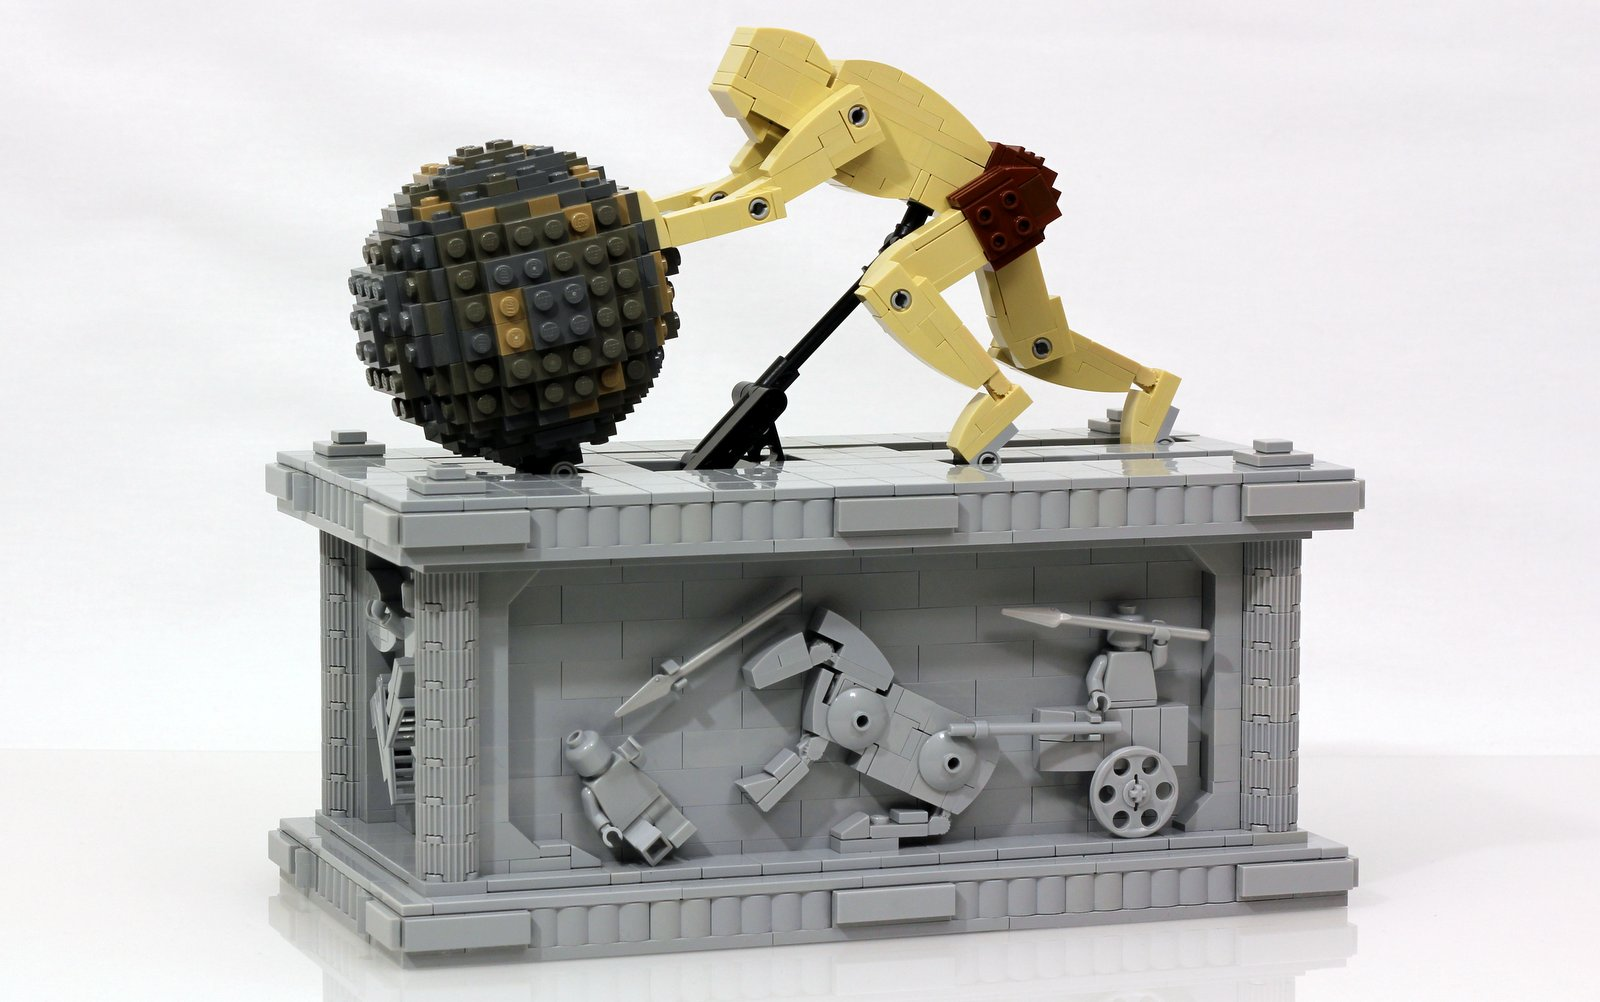 A Perpetual Sisyphus Kinetic Sculpture Built With Lego